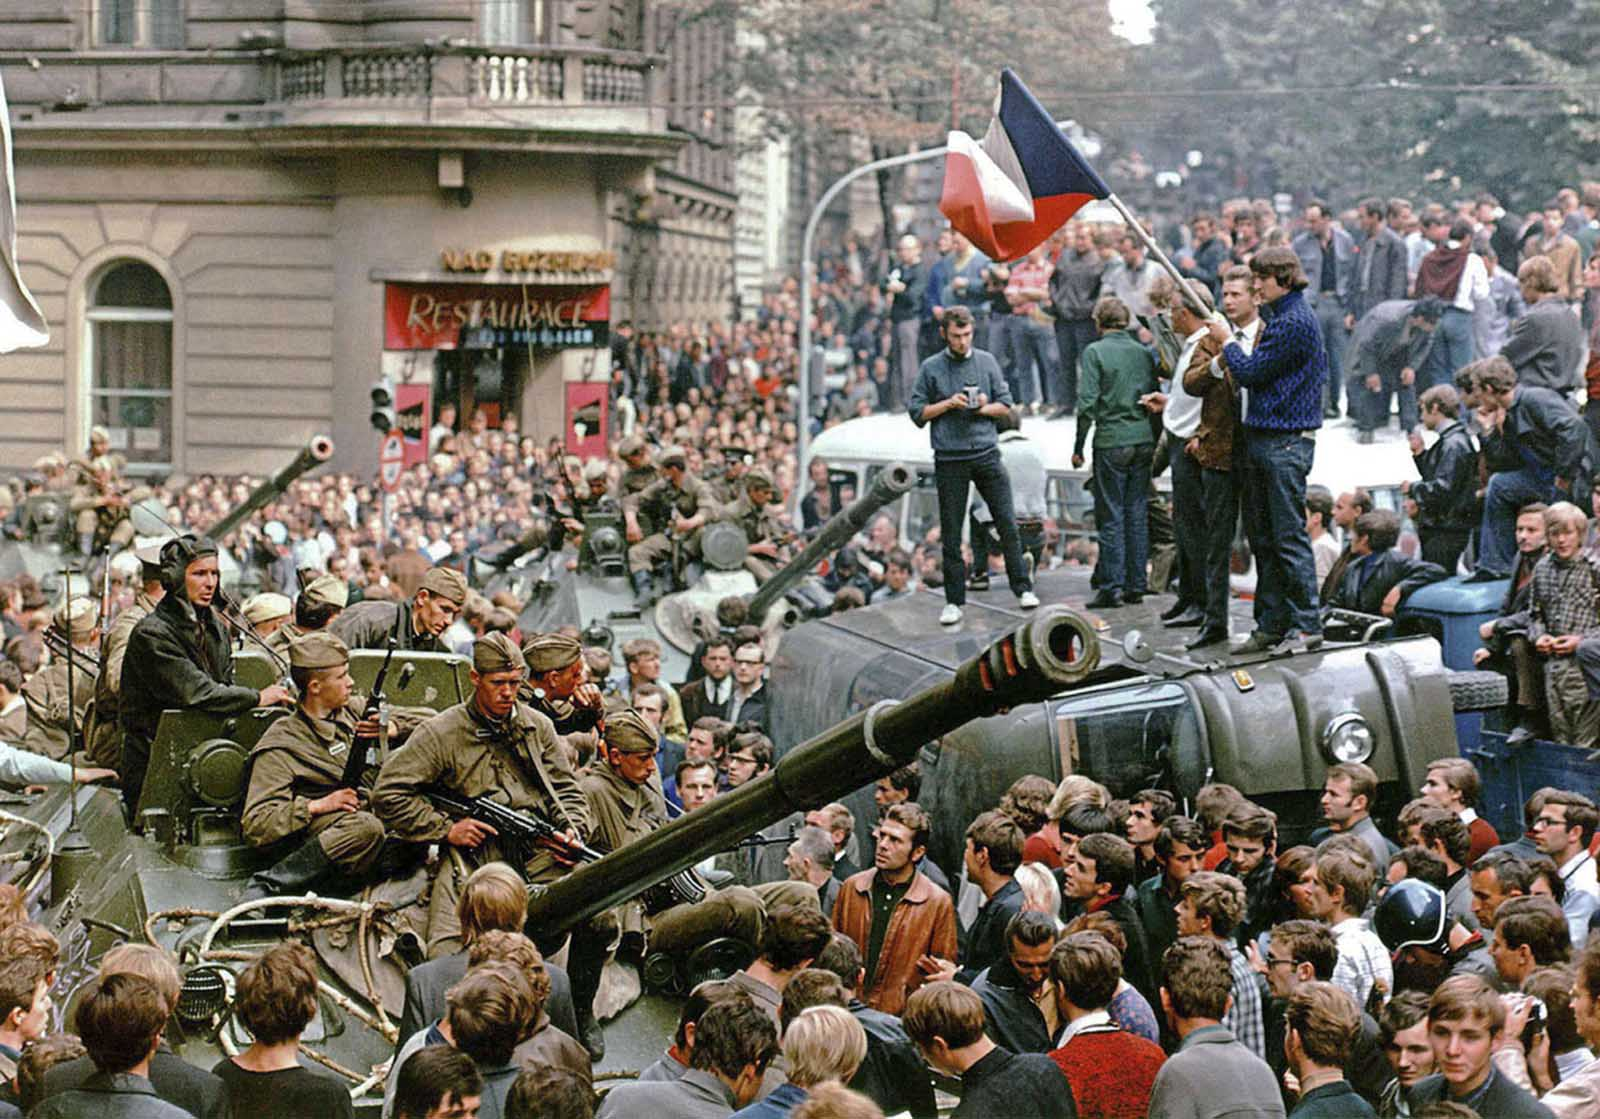 Prague residents surround Soviet tanks in front of the Czechoslovak Radio building, in central Prague, during the first day of the Soviet-led invasion of Czechoslovakia, on August 21, 1968.